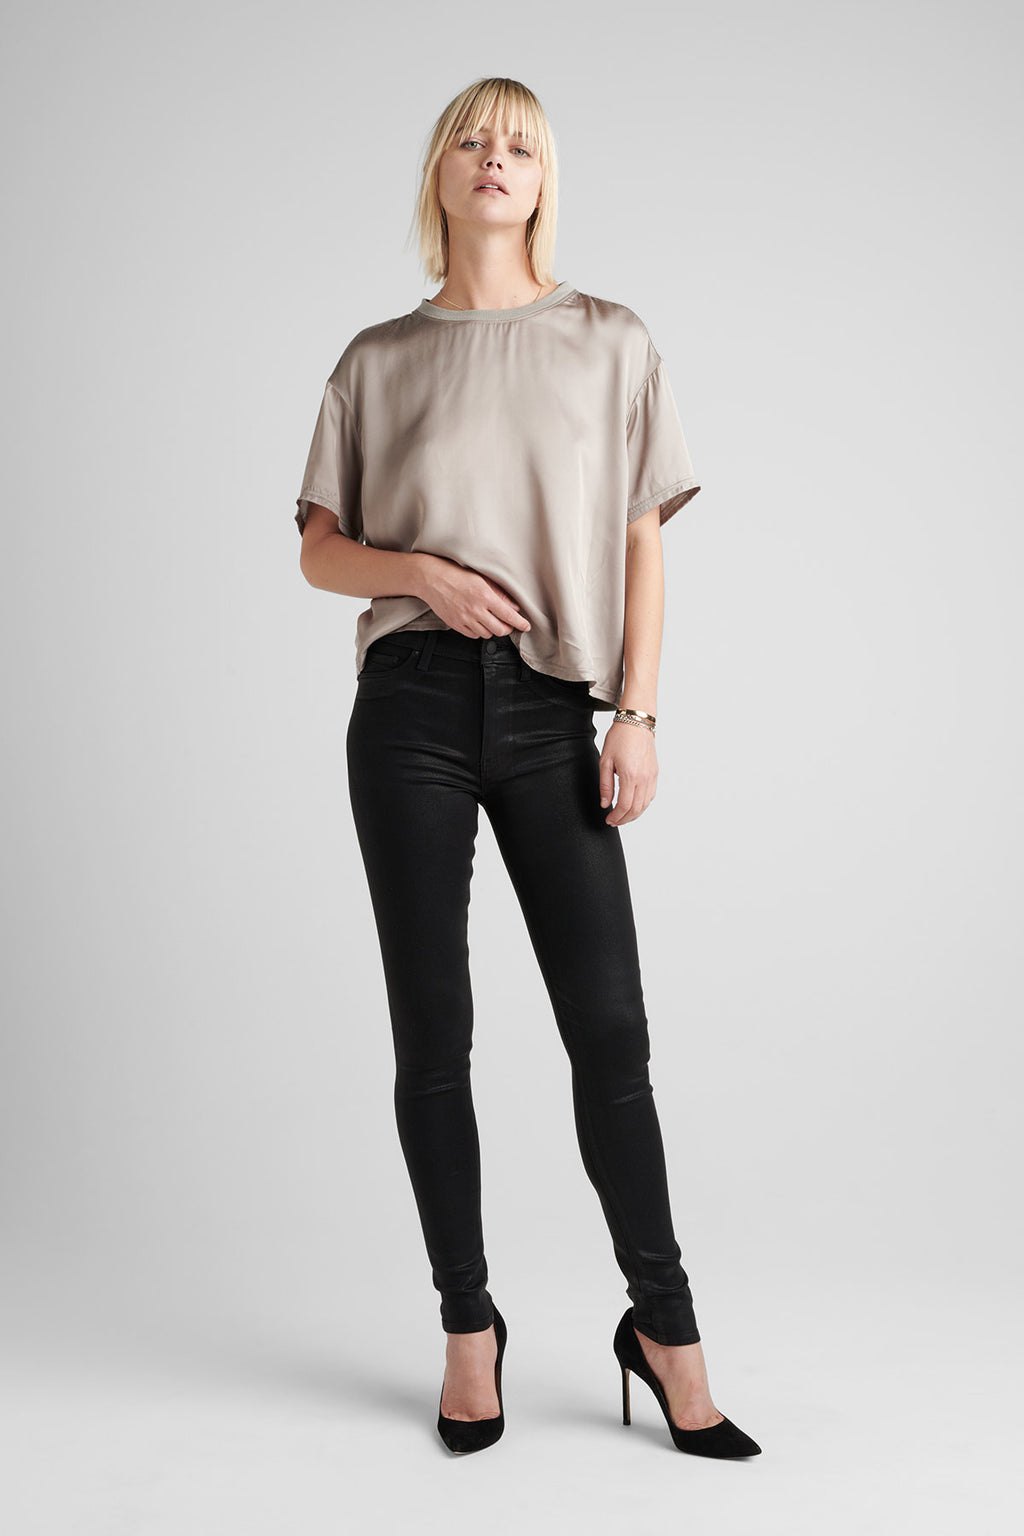 BARBARA HIGH RISE SUPER SKINNY COATED JEAN - NOIR CO 2 - Image 1